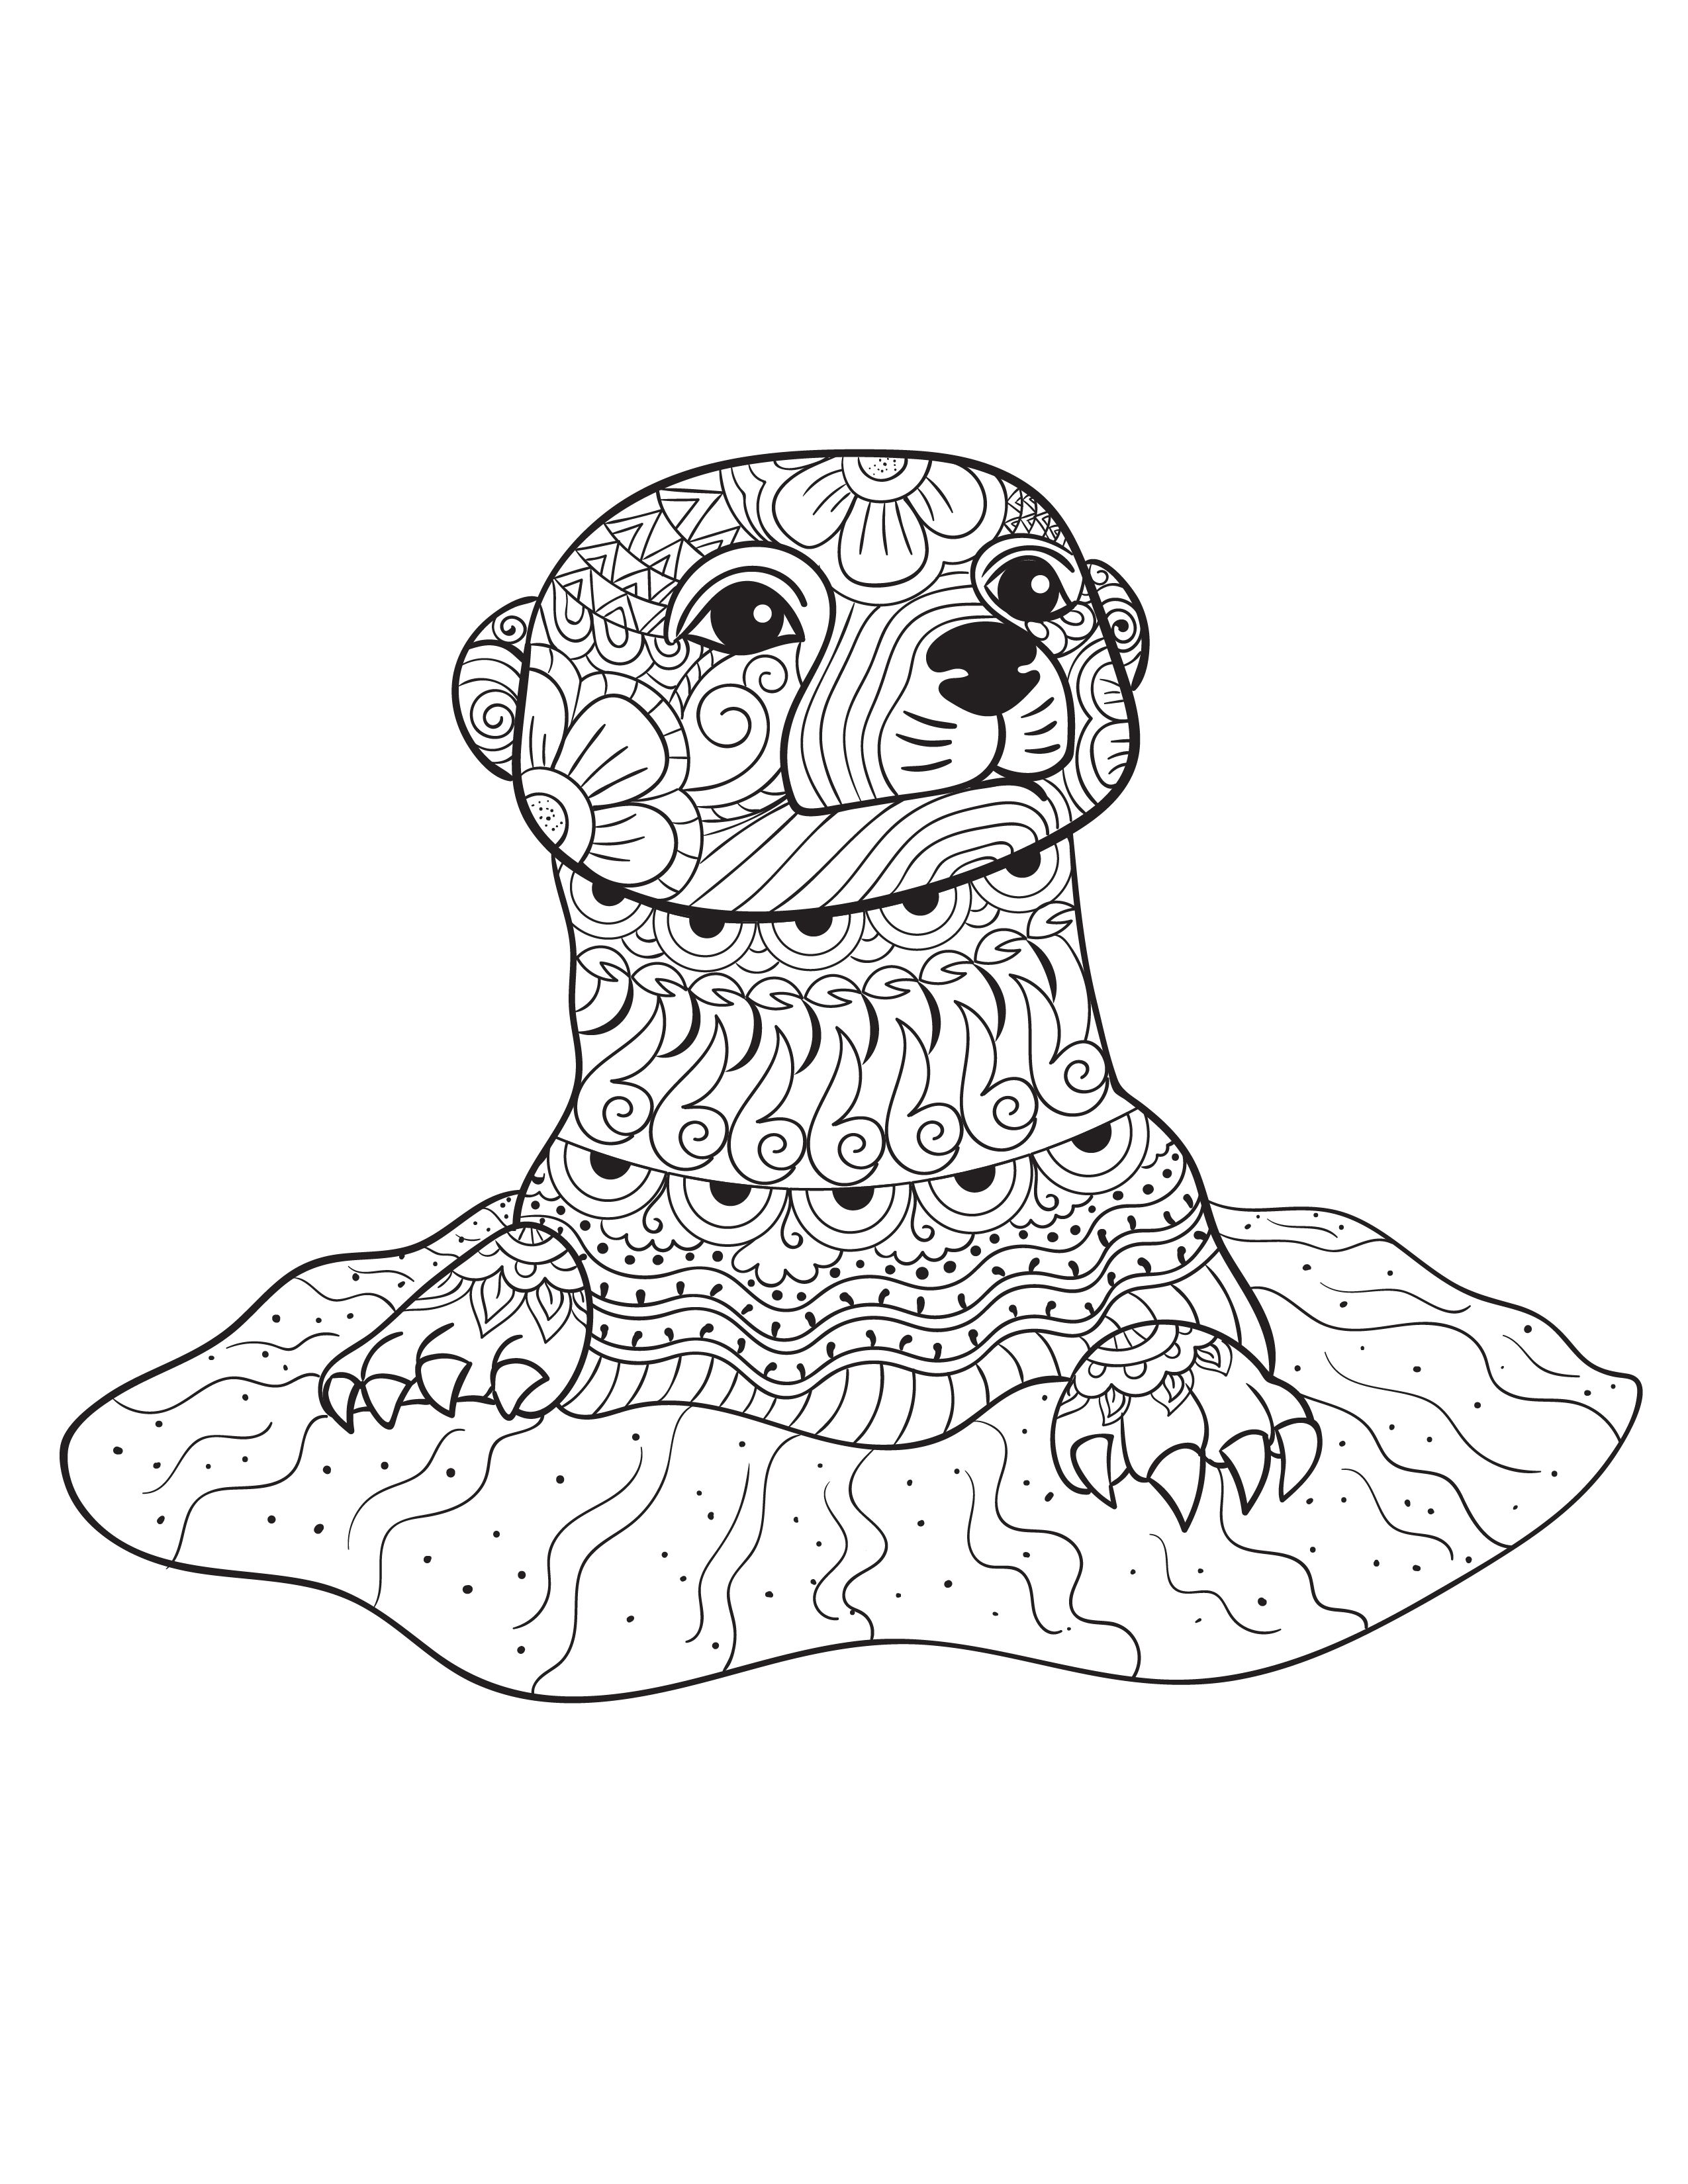 An Otter From Animals